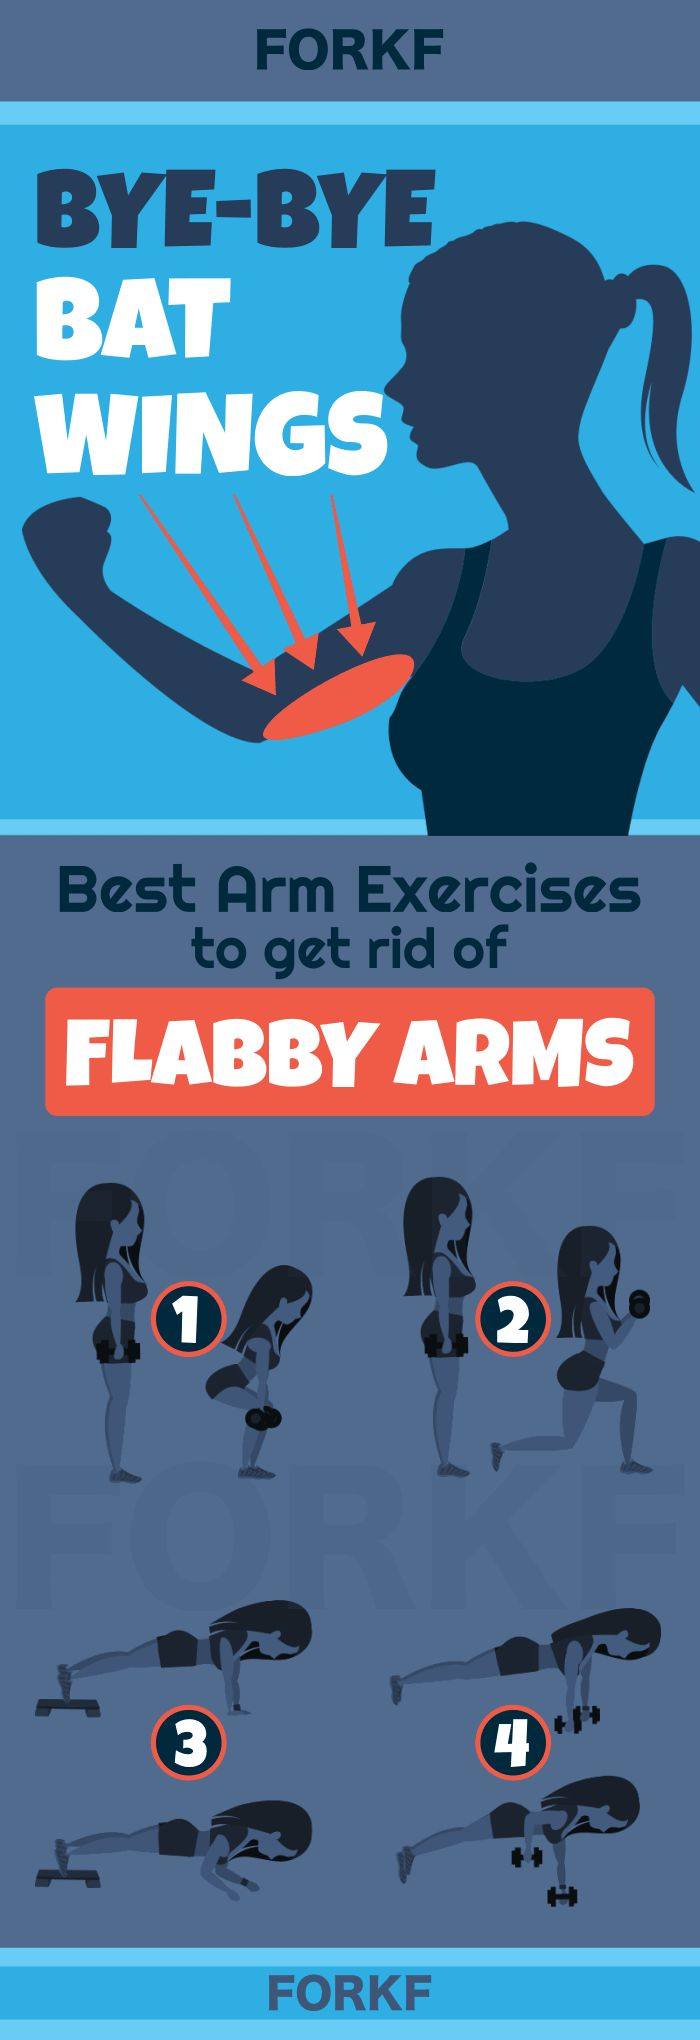 Your abs are not the only sign of healthiness. Here are 4 simple moves that will help you lose arm fat and define your shoulders and arms.